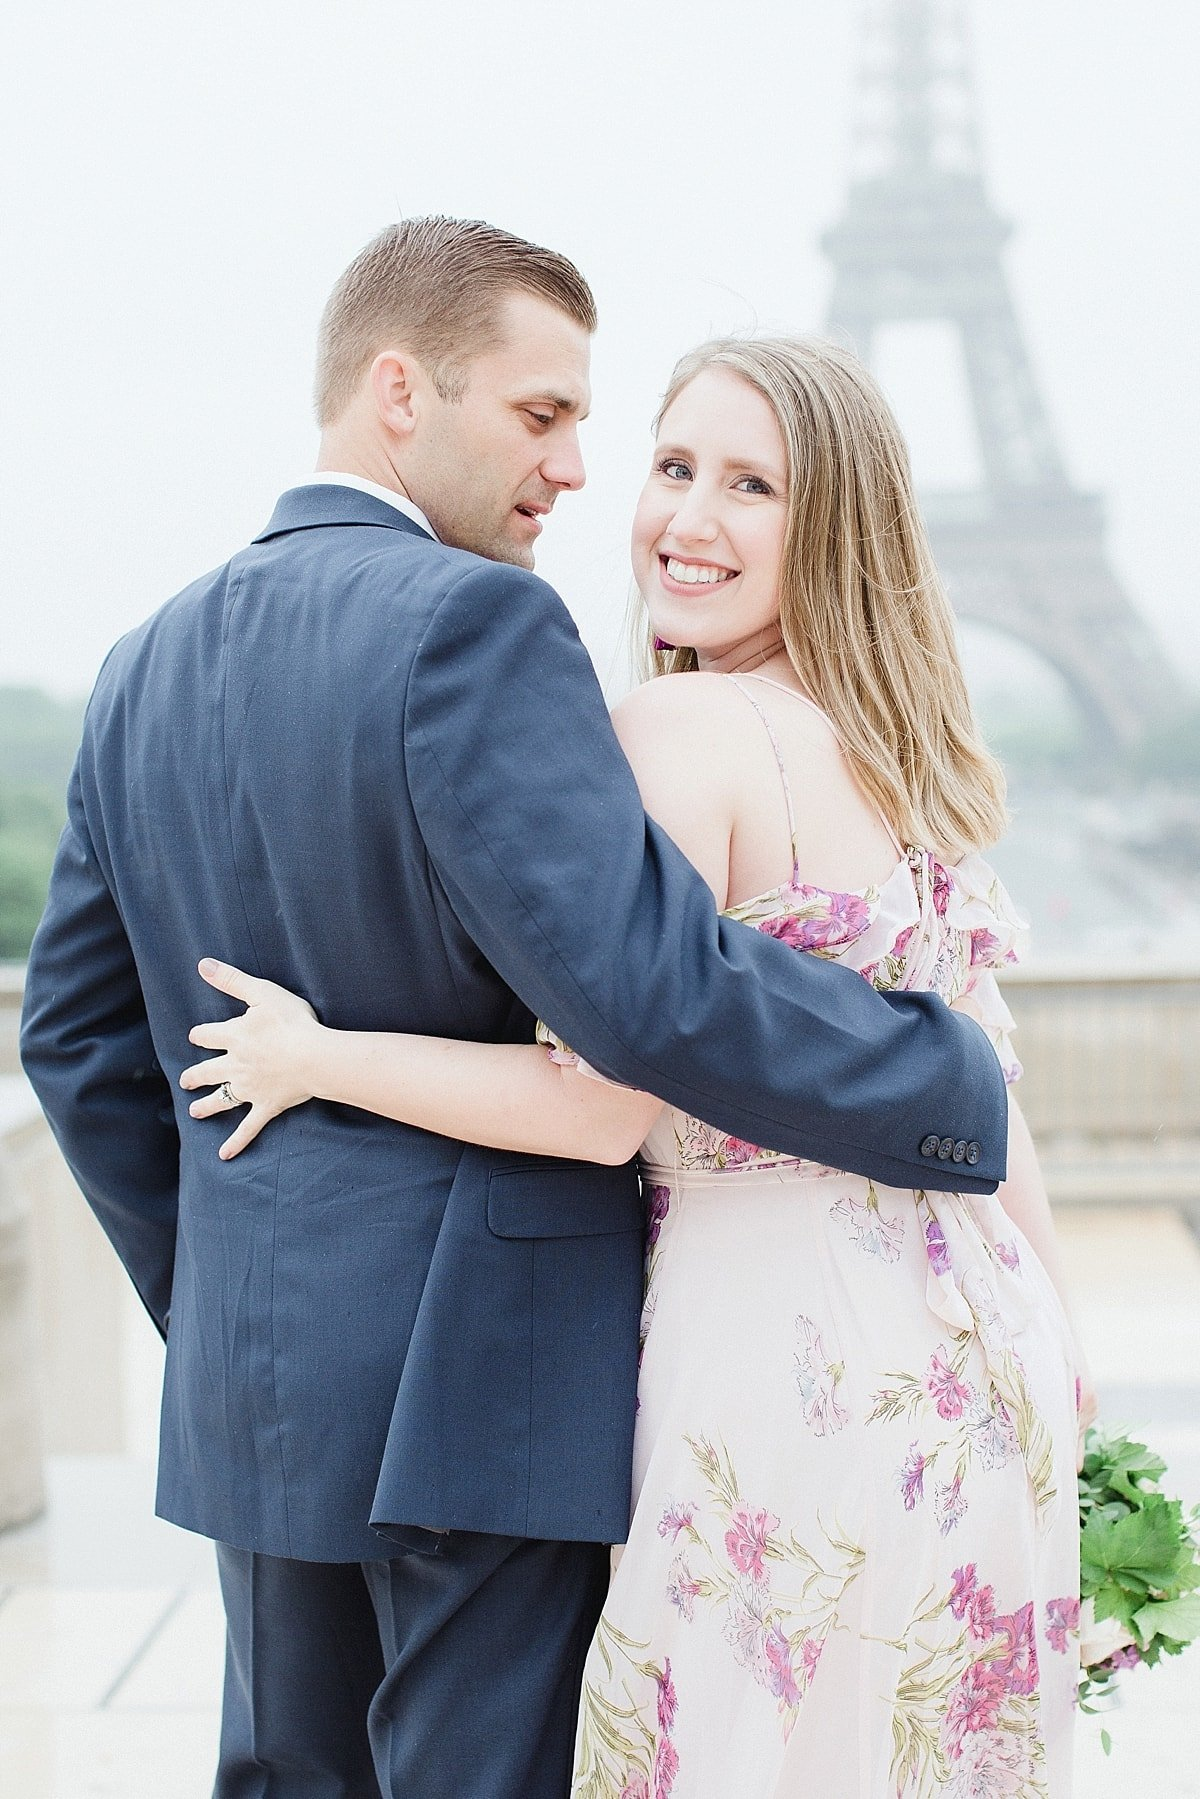 paris-photo-session-anniversary-alicia-yarrish-photography_12